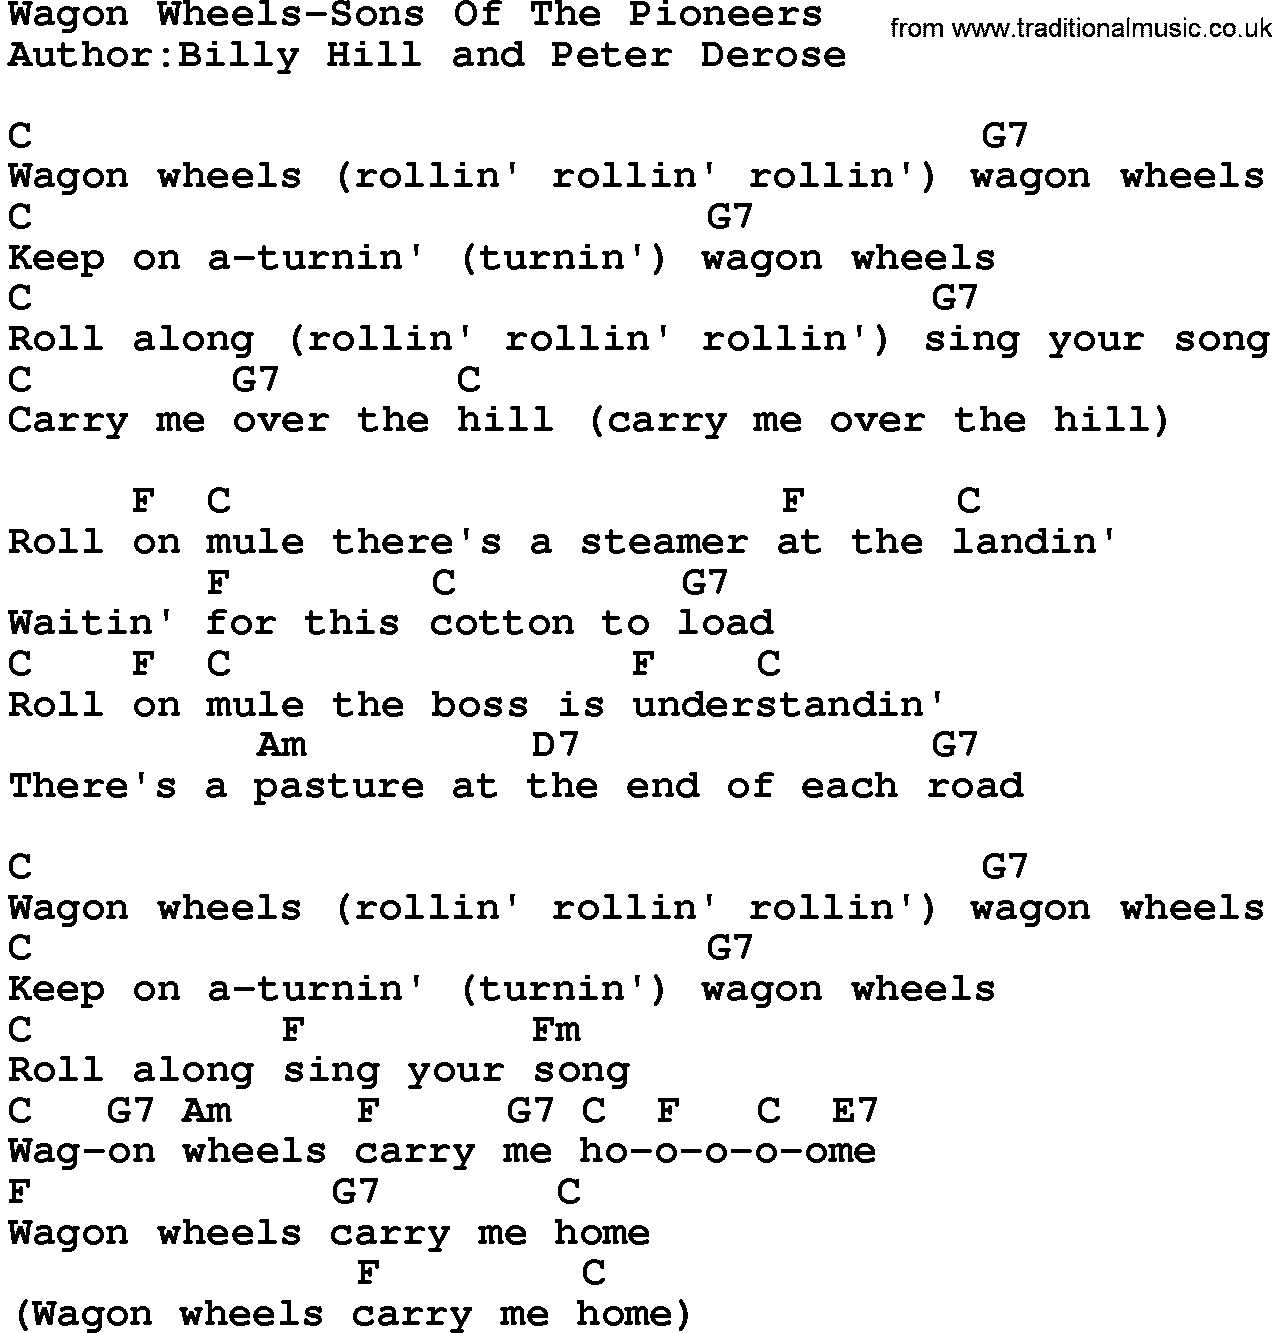 Country Music:Wagon Wheels-Sons Of The Pioneers Lyrics and Chords